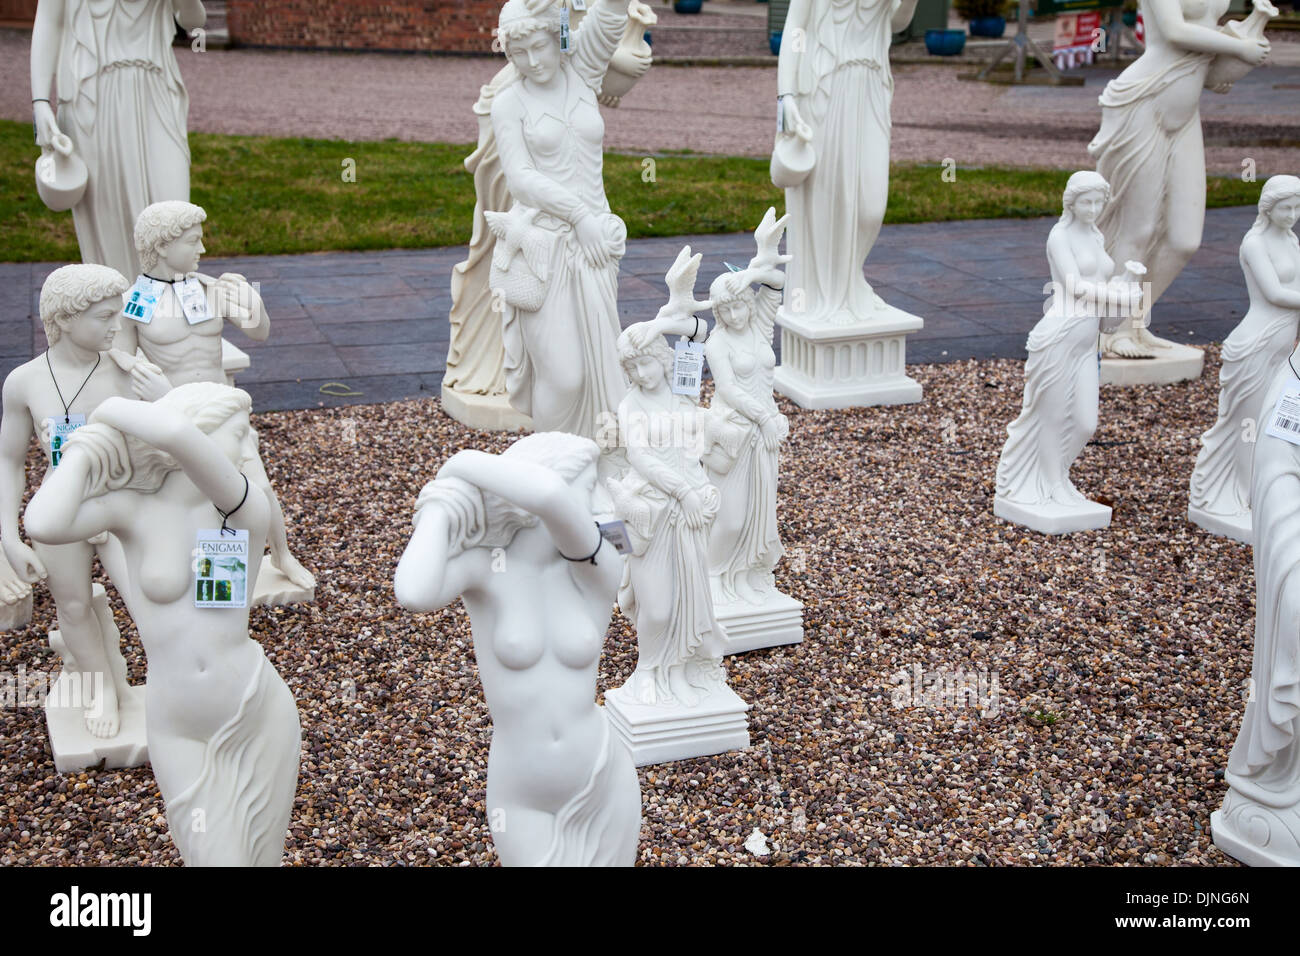 Garden Ornaments For Sale High Resolution Stock Photography And Images Alamy